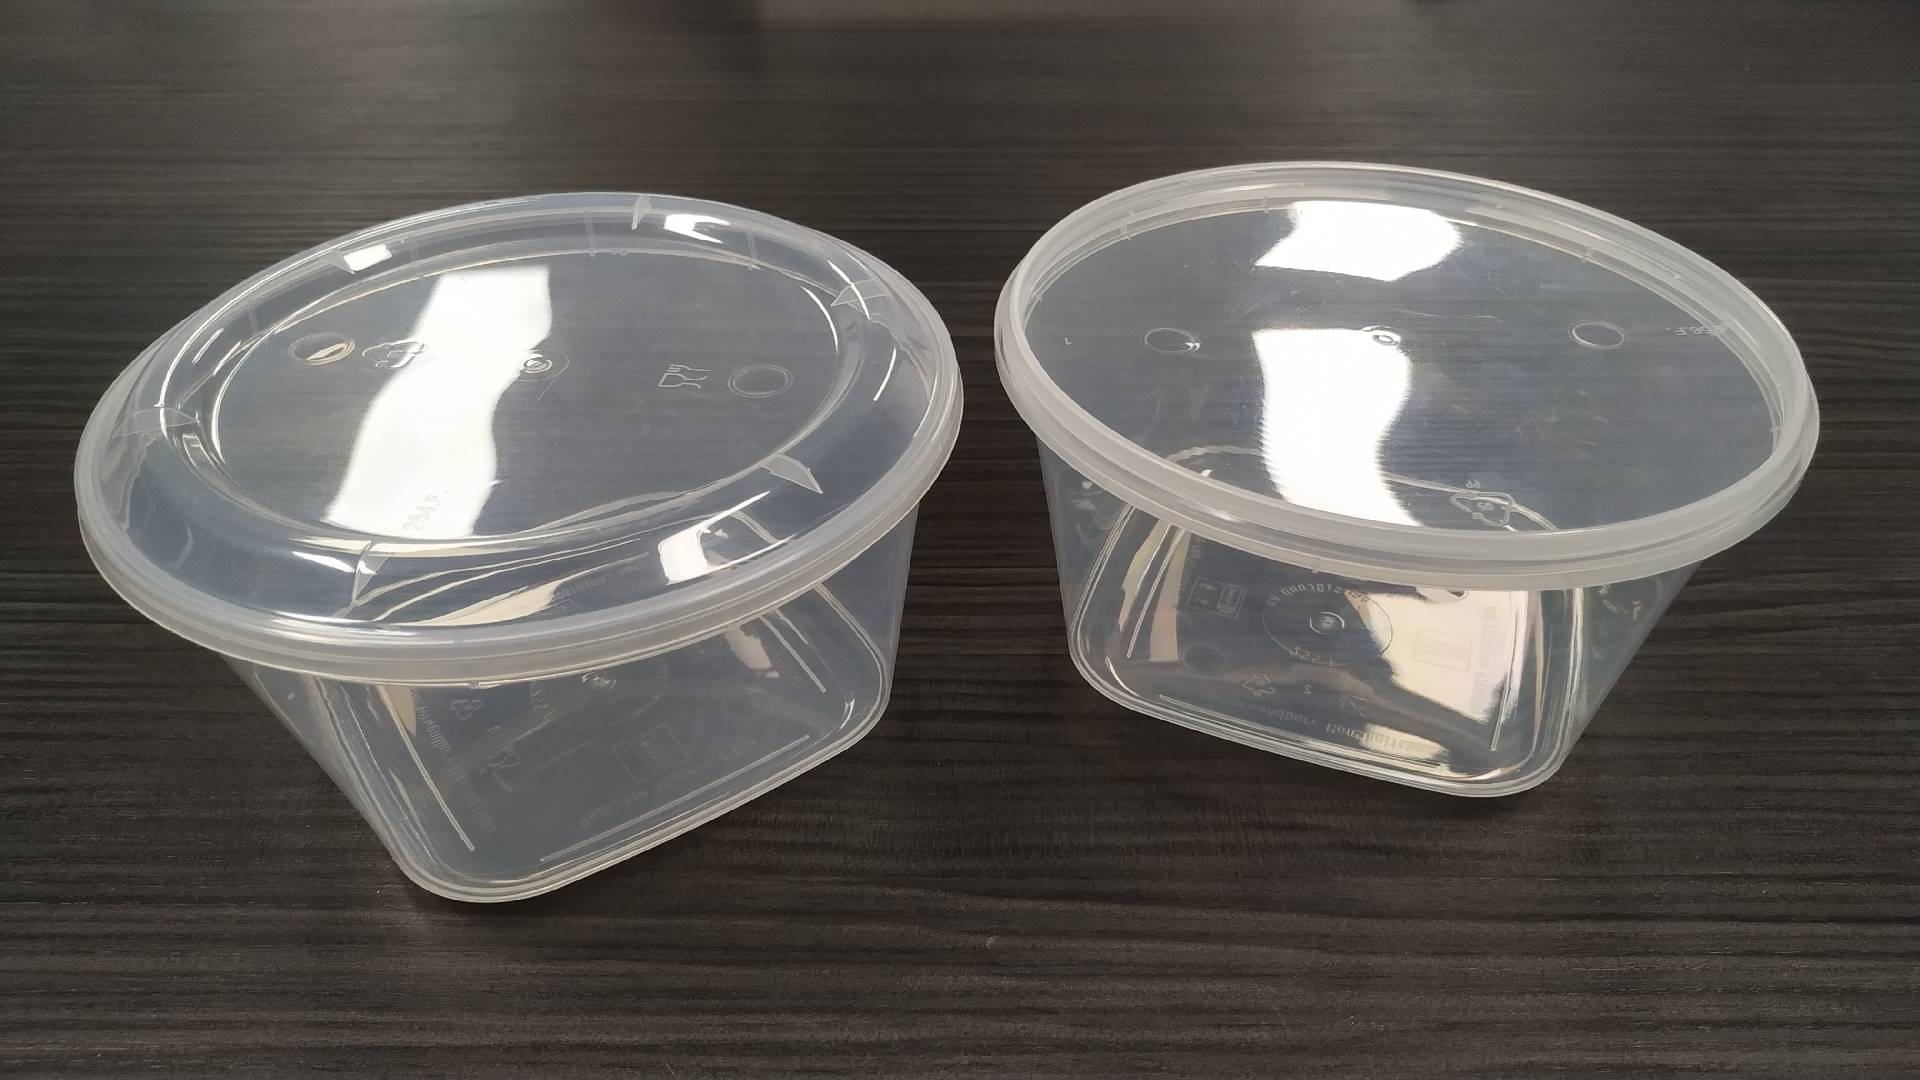 2 cavities molds BOX and TAMPER PROOF LID